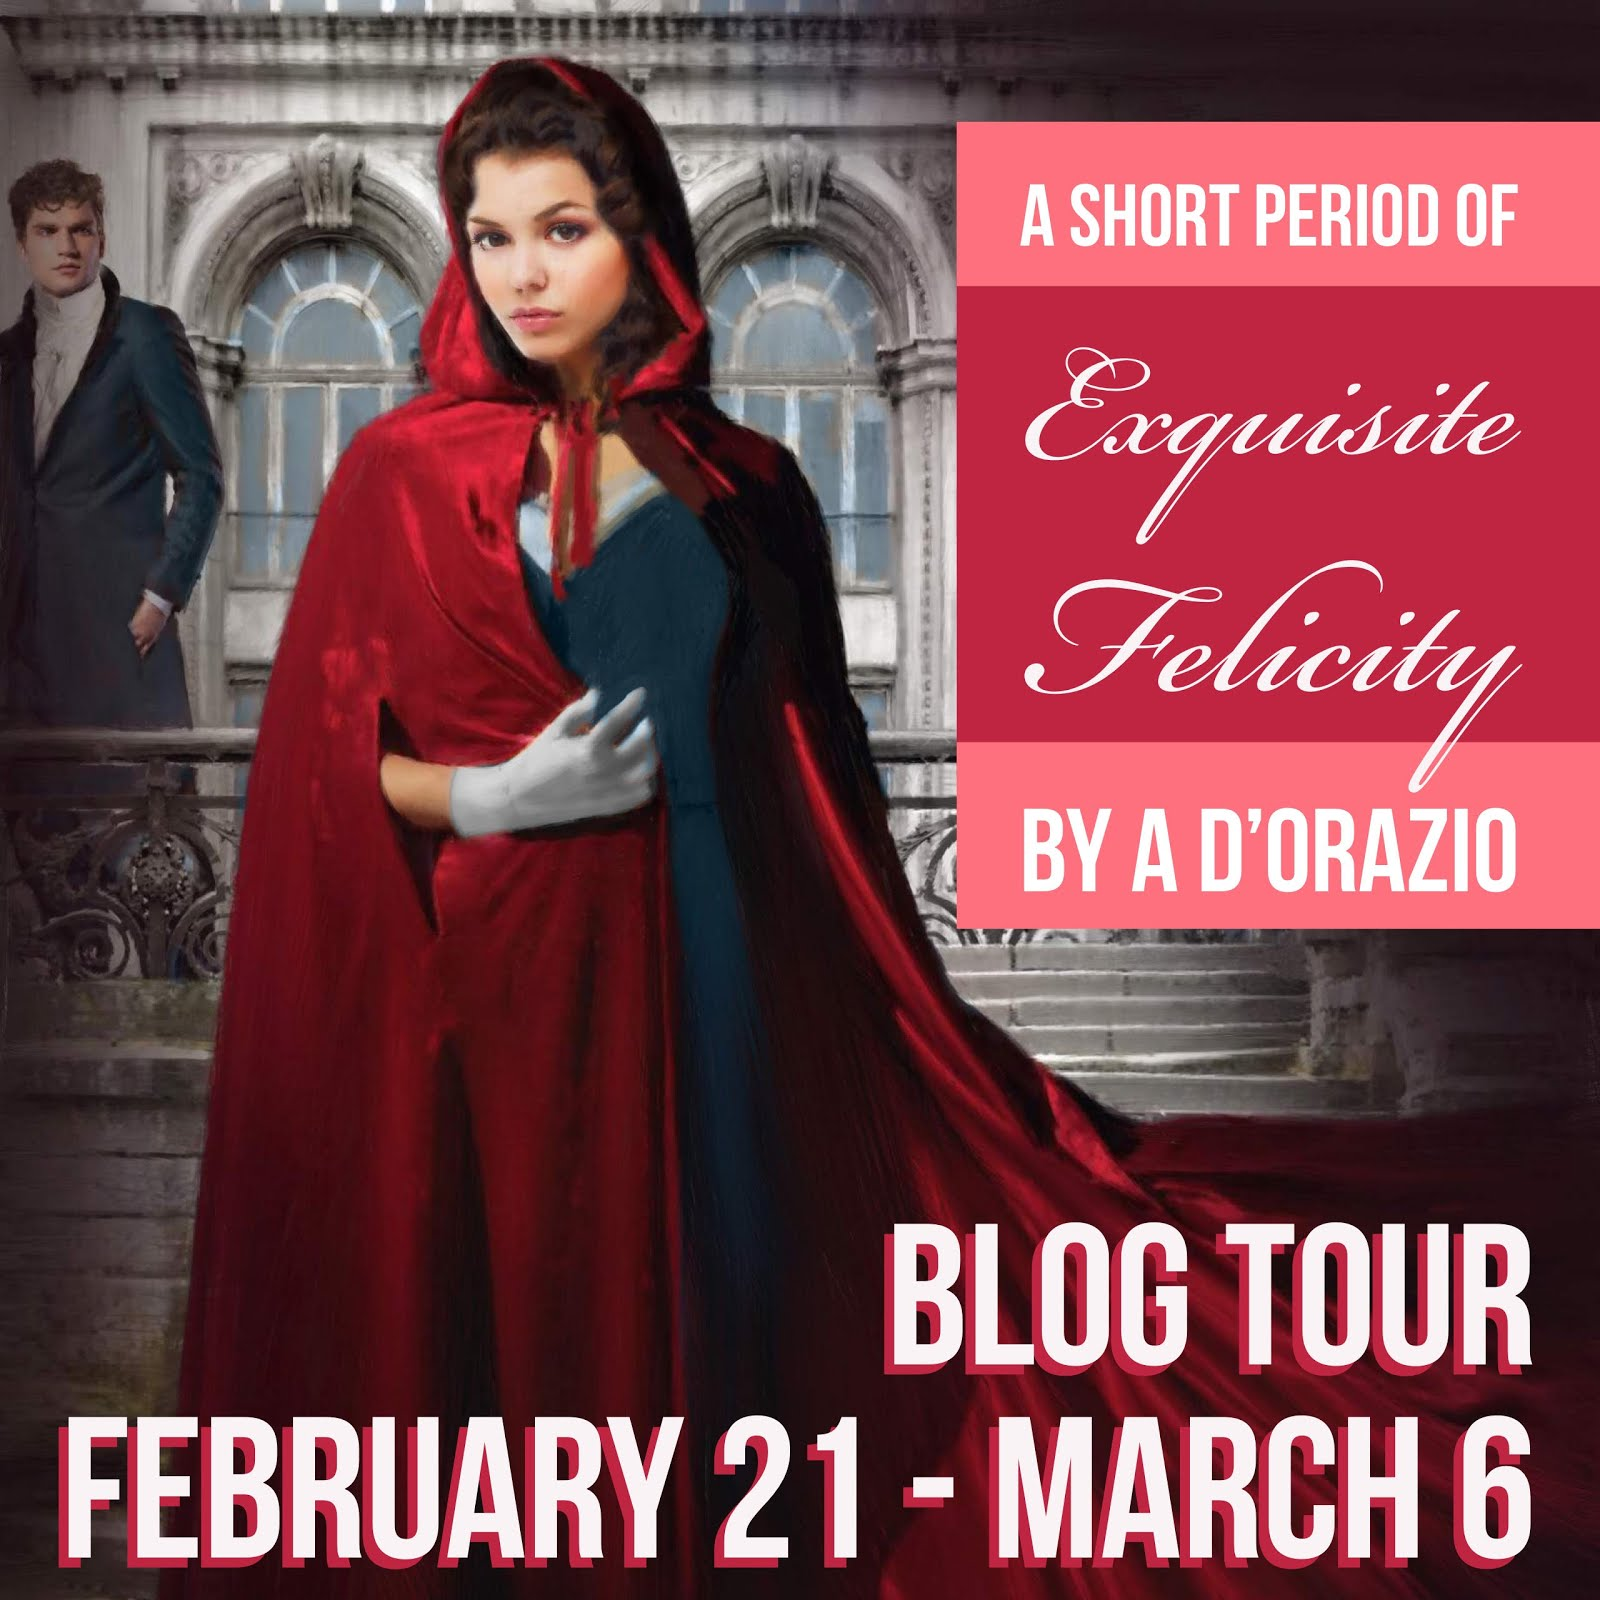 A Short Period of Exquisite Felicity, By A. D'Orazio - Blog Tour